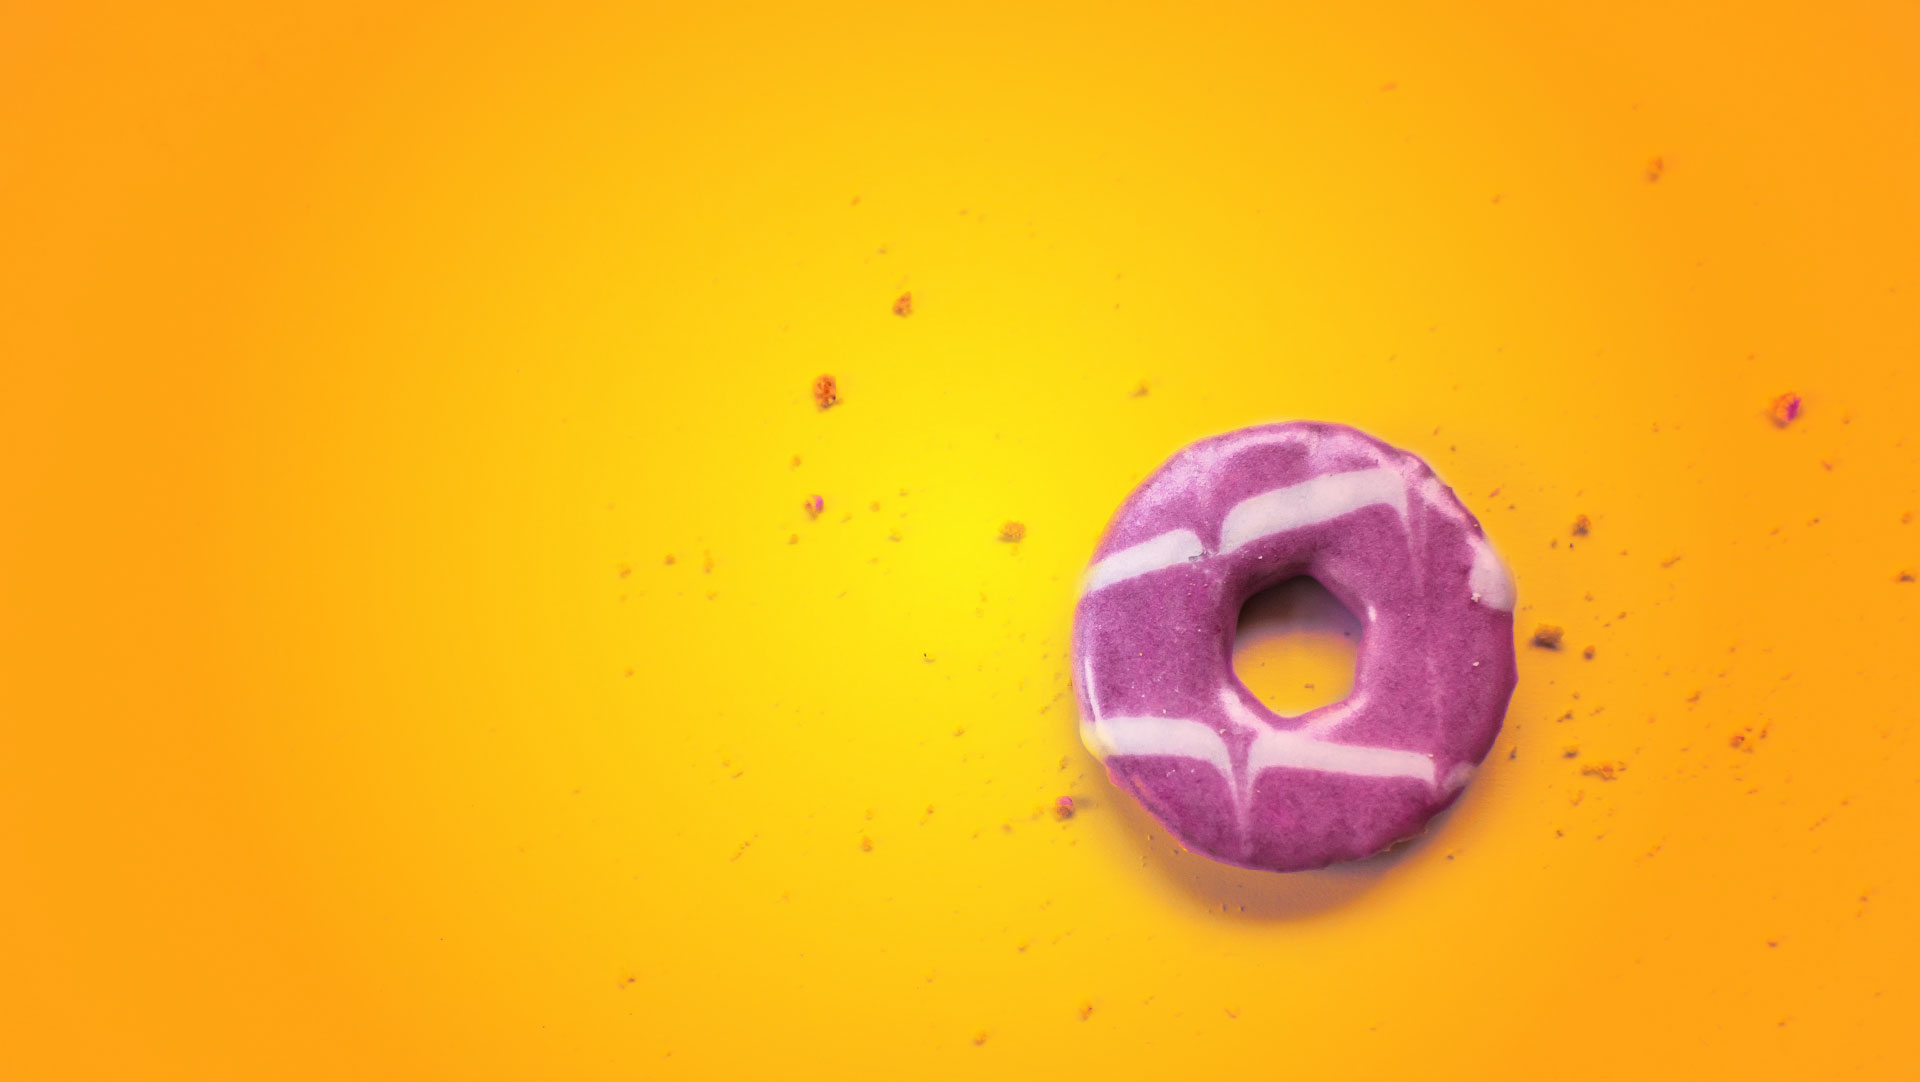 Marketing slider of party ring on yellow and orange background